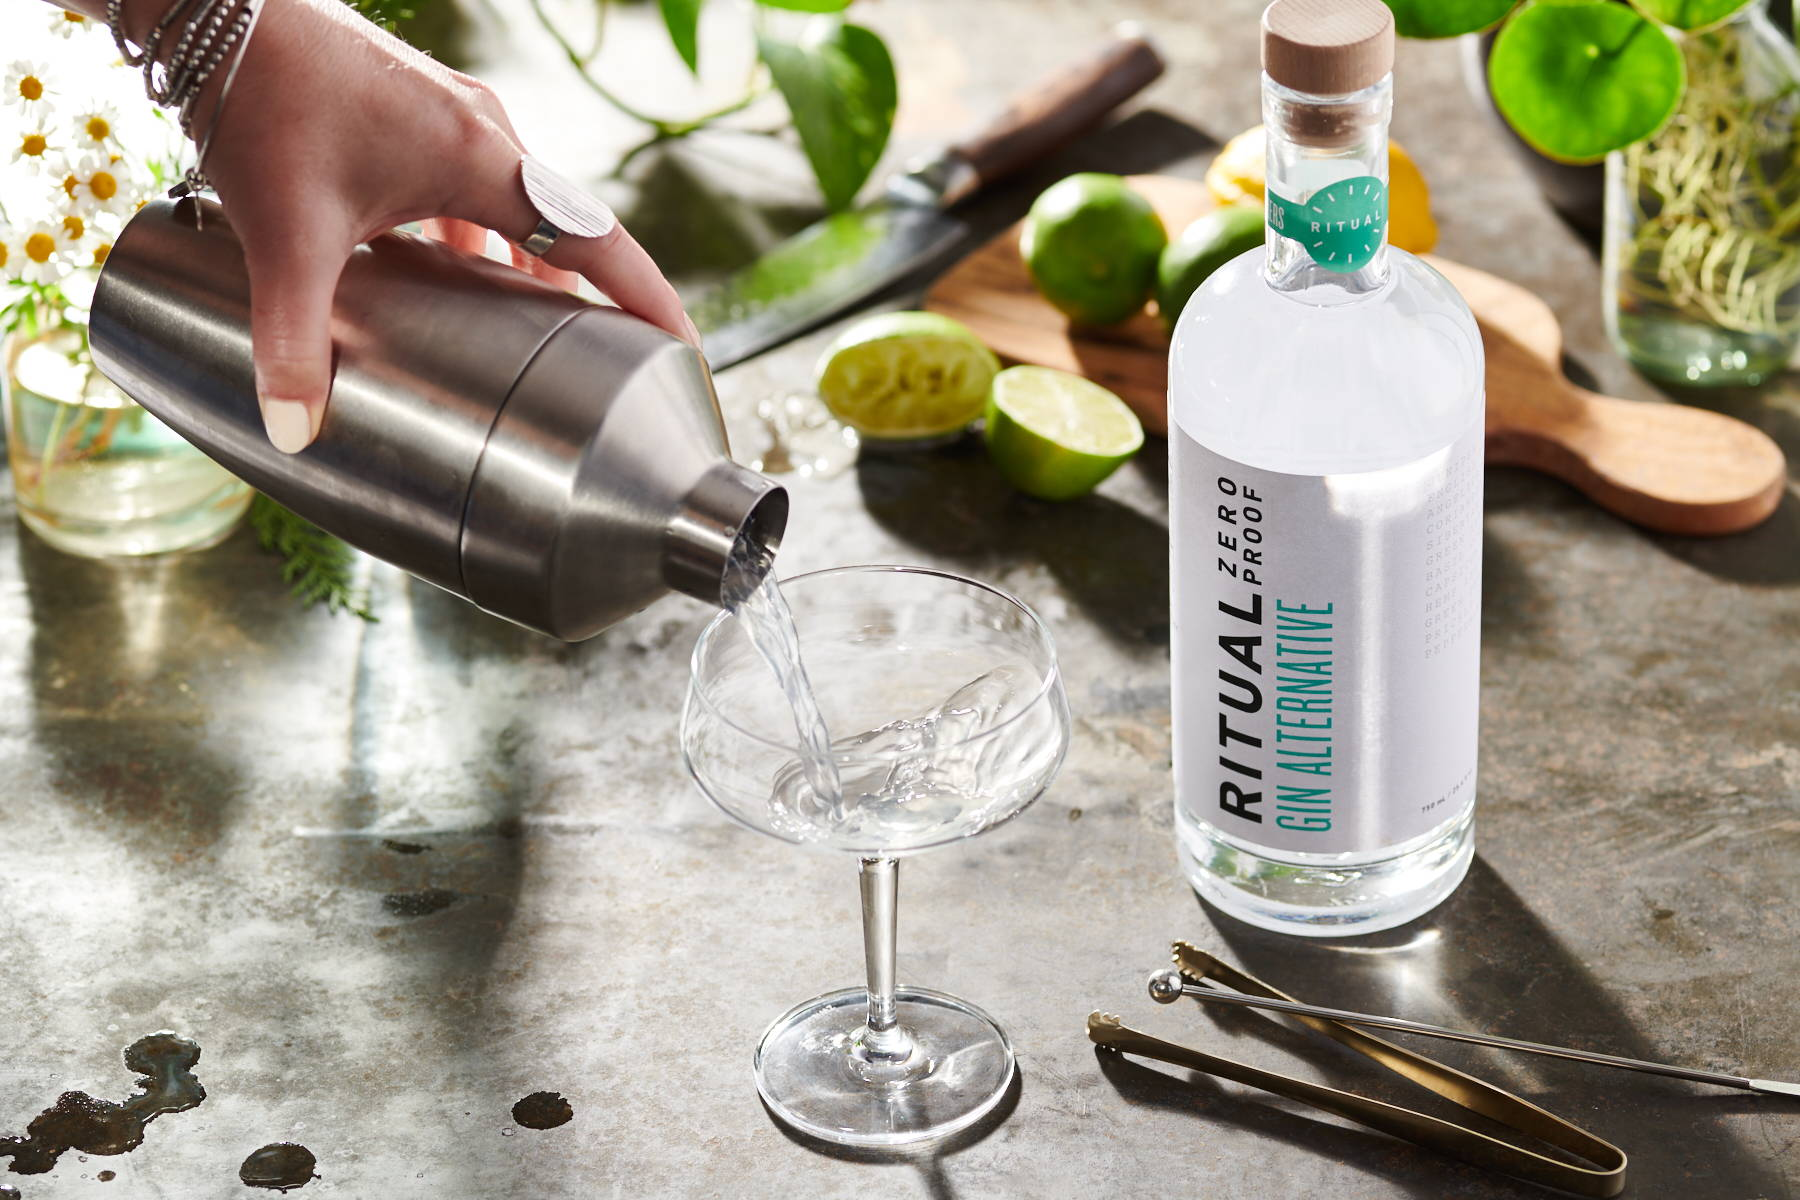 An alcohol-free martini being poured from a cocktail shaker, next to a bottle of Ritual spirit-free gin alternative.